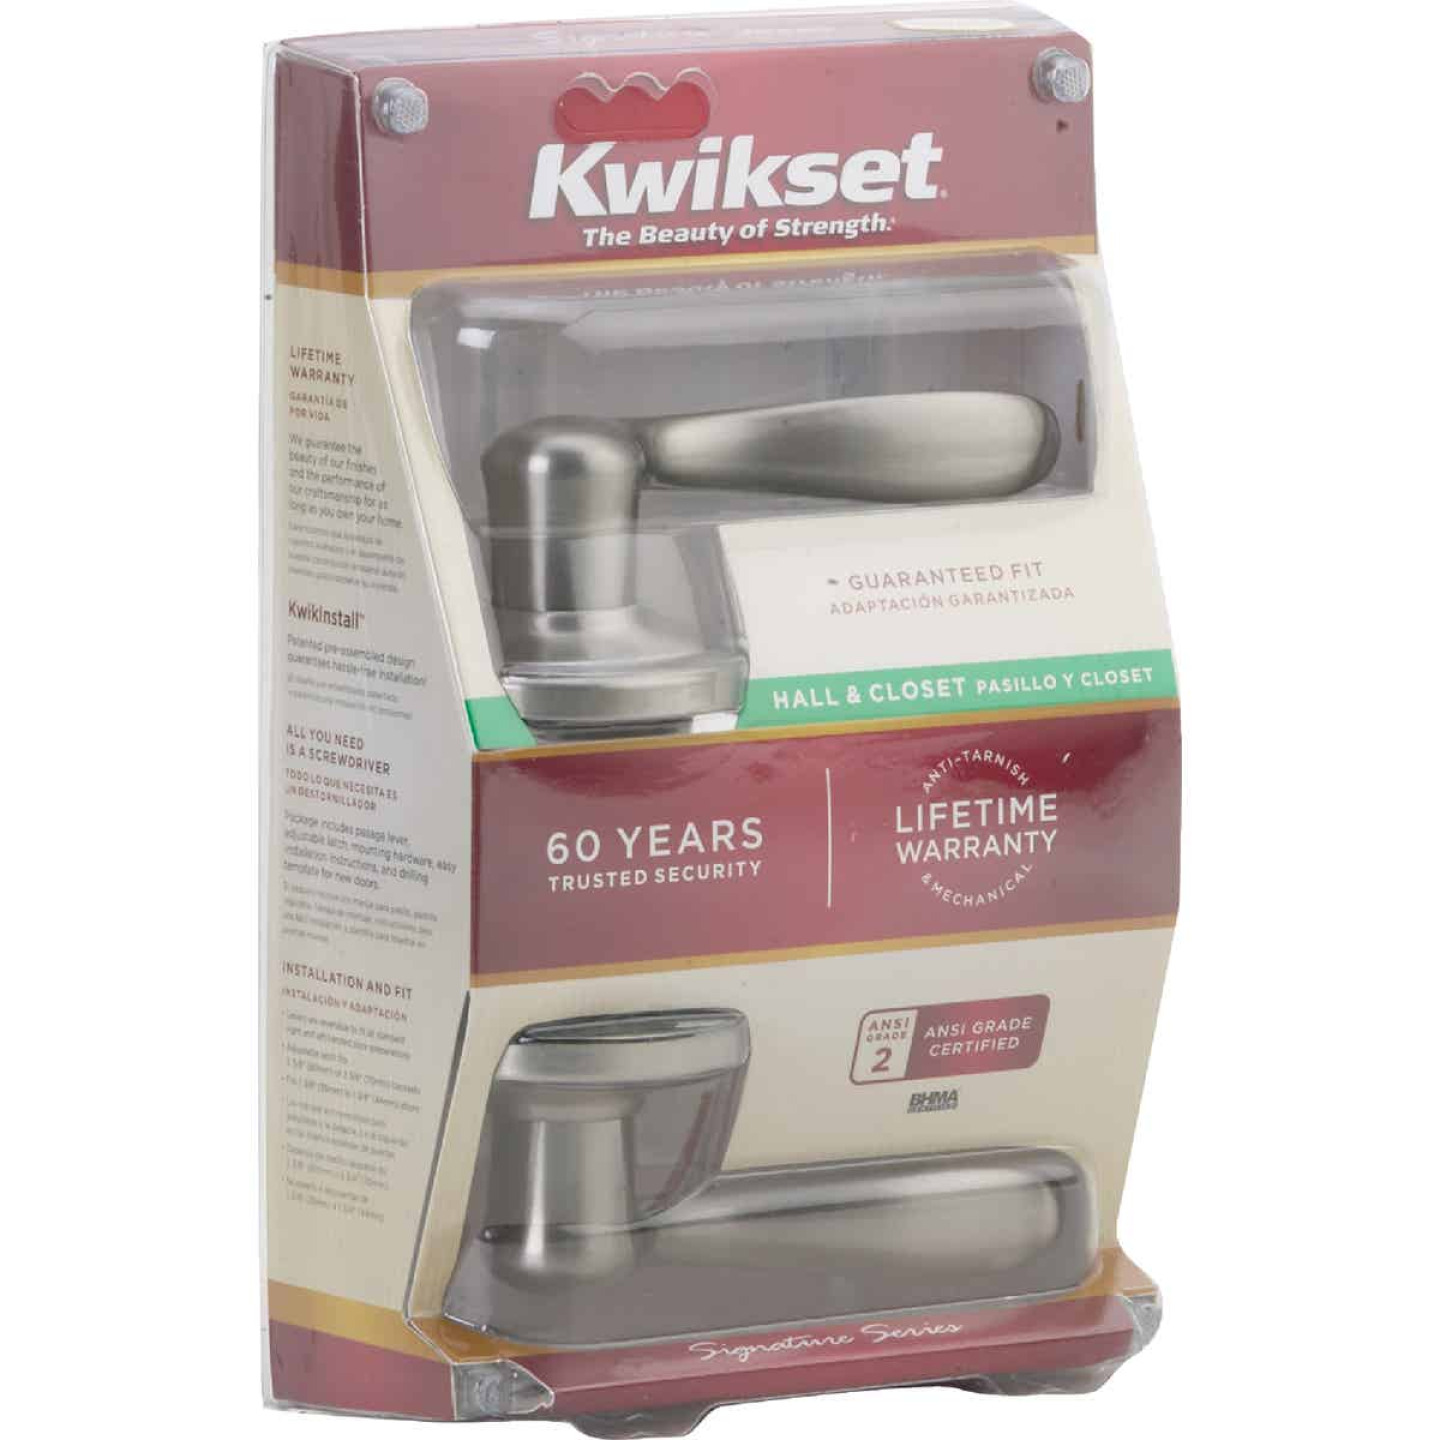 Kwikset Signature Series Satin Nickel Tustin Passage Door Lever Image 2